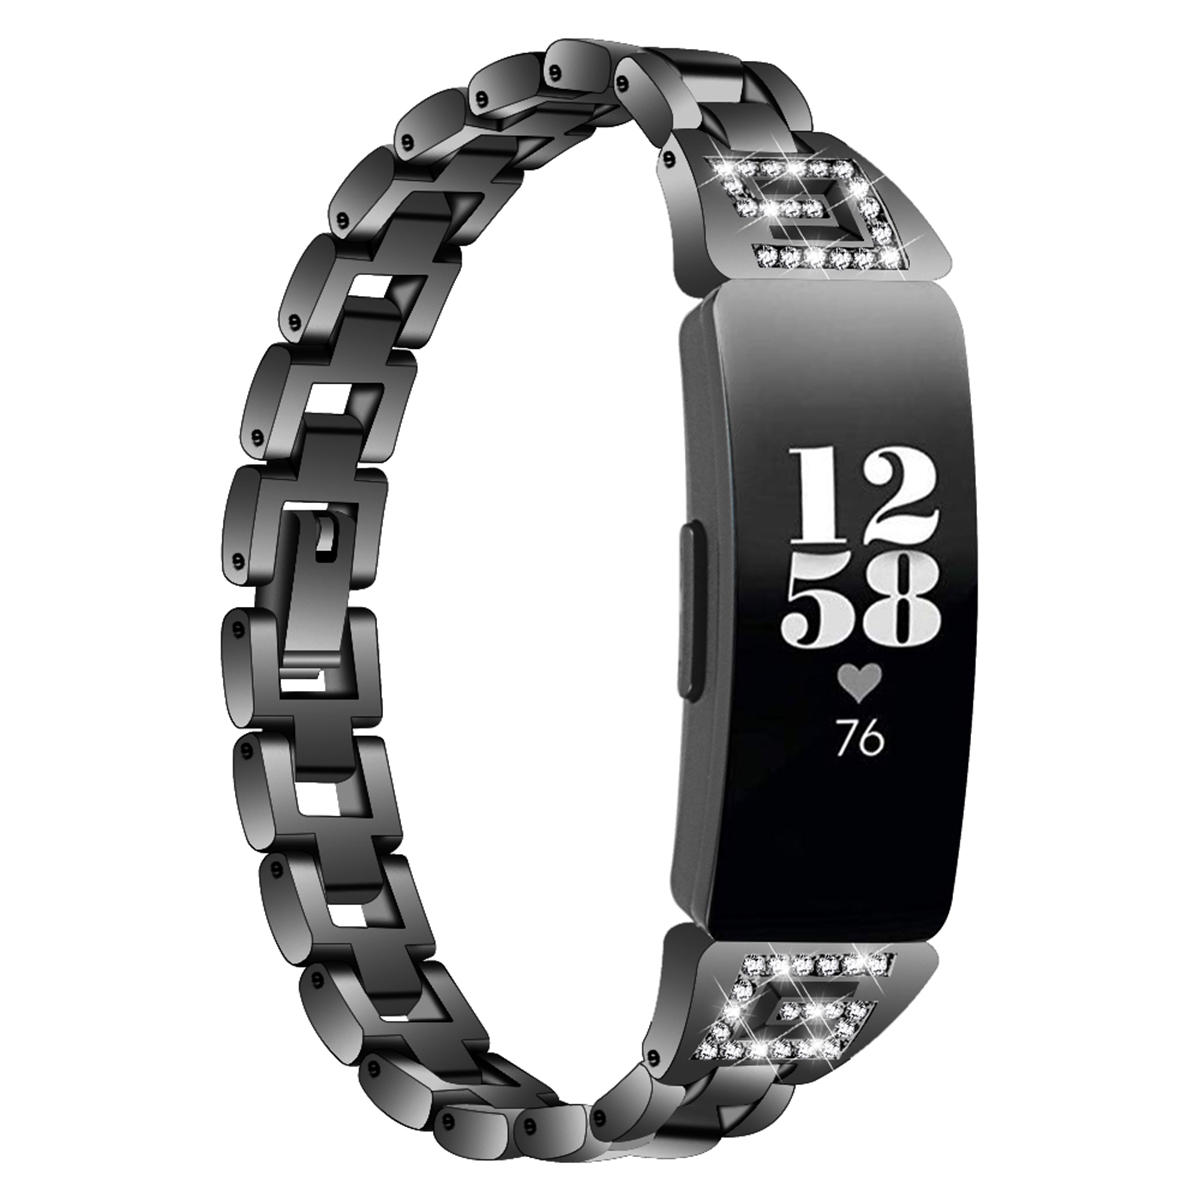 Bakeey Watch band Stainless Steel Watch Strap For Fitbit Inspire/HR